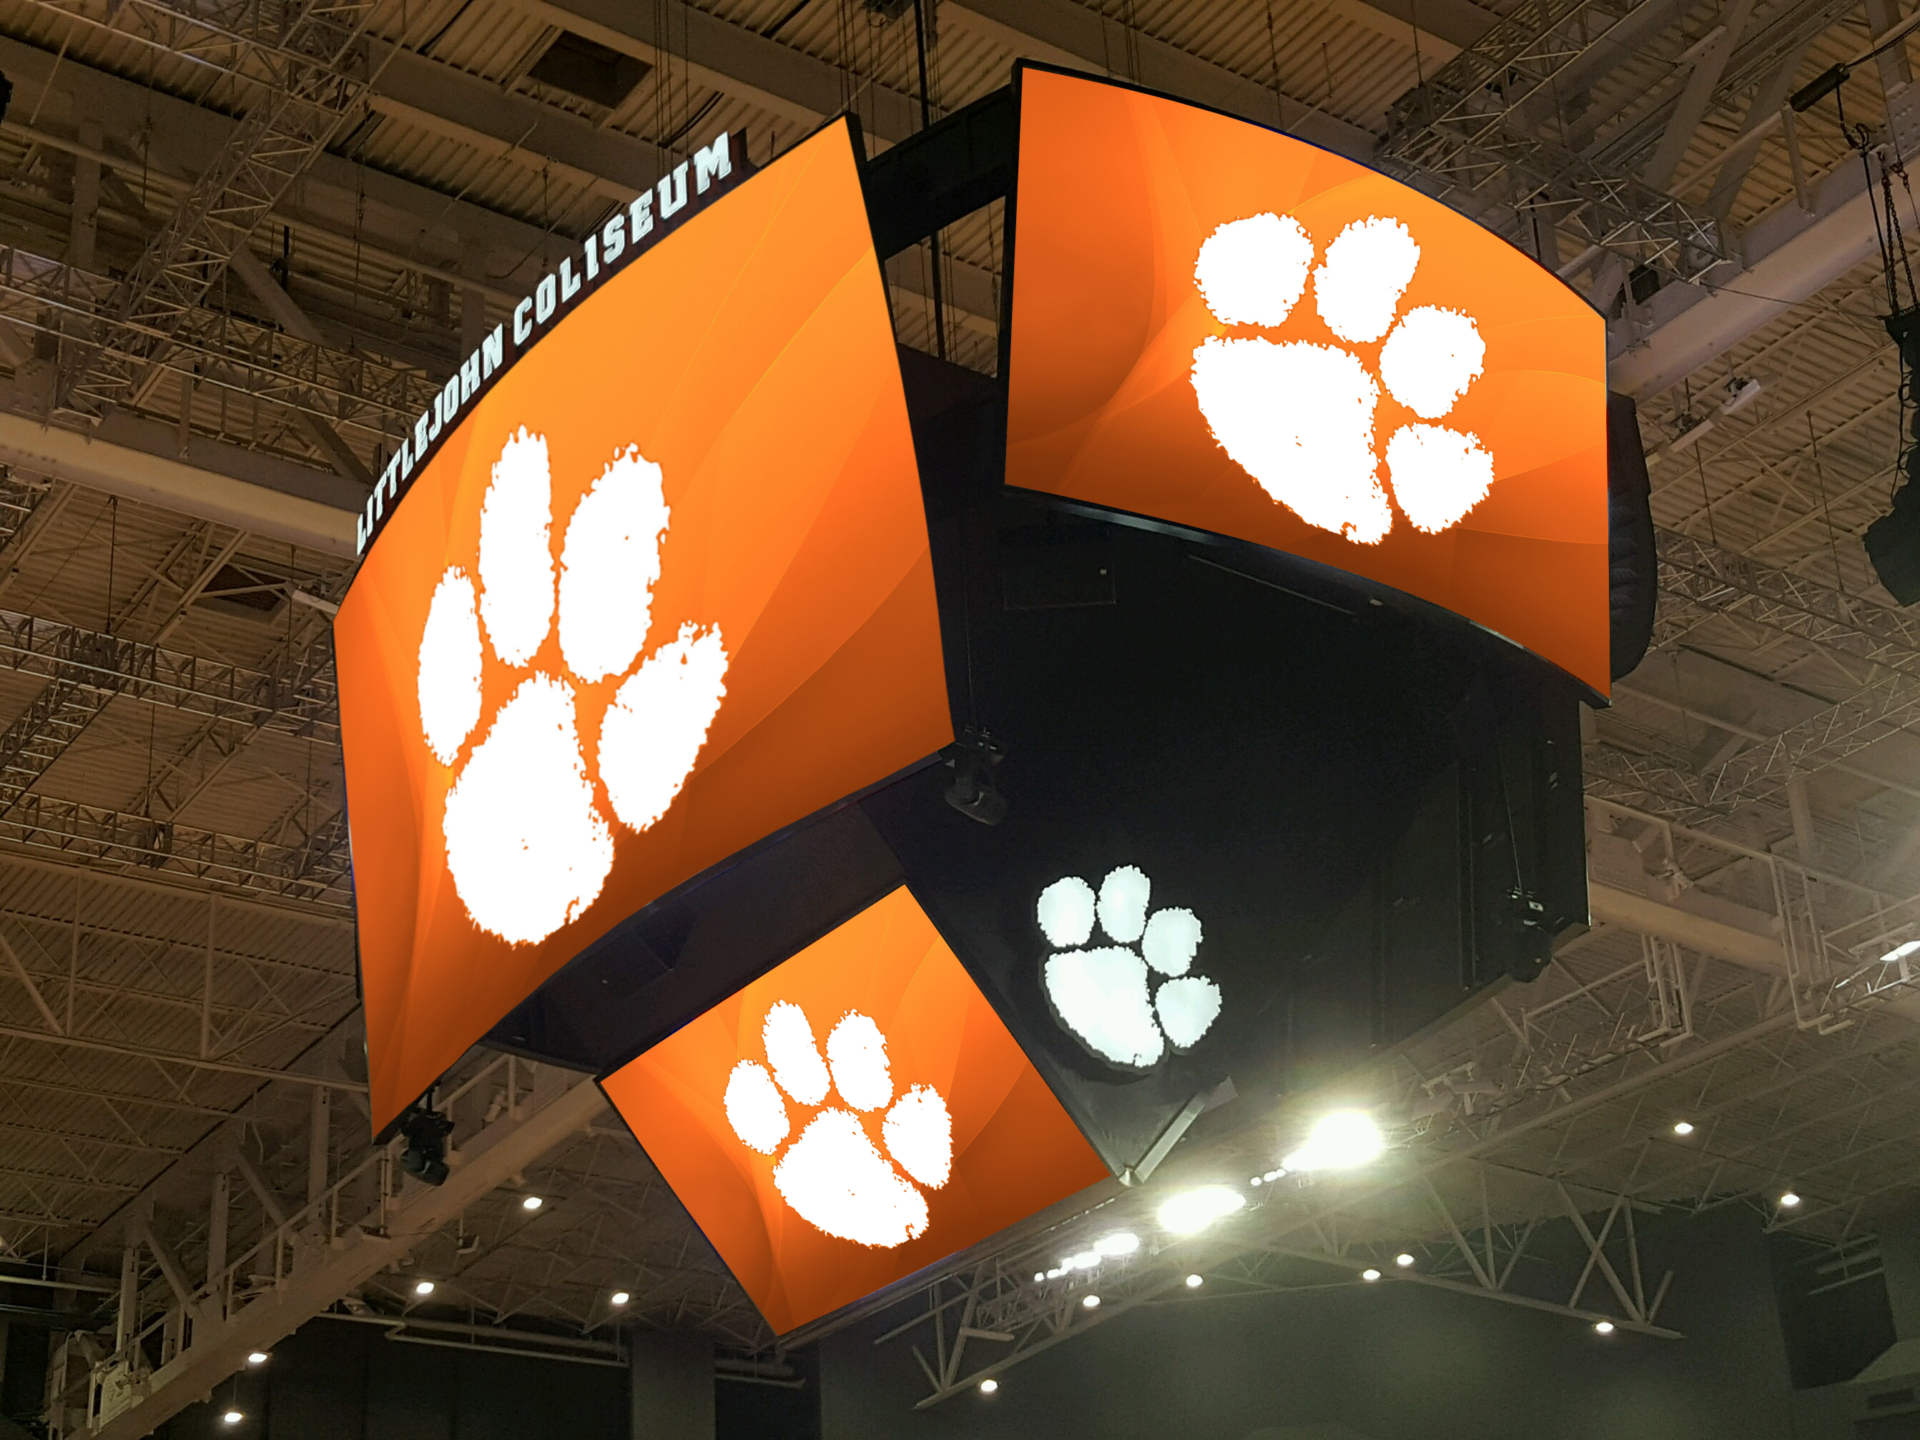 AJP, Anthony James Partners, AV Consulting, Center Hung, Centerhung, College Sports, College Basketball, ACC Coastal Division, LED Video Scoreboard, LED, LED Video, Scoreboard, Video Board, Boxcar, Box Car